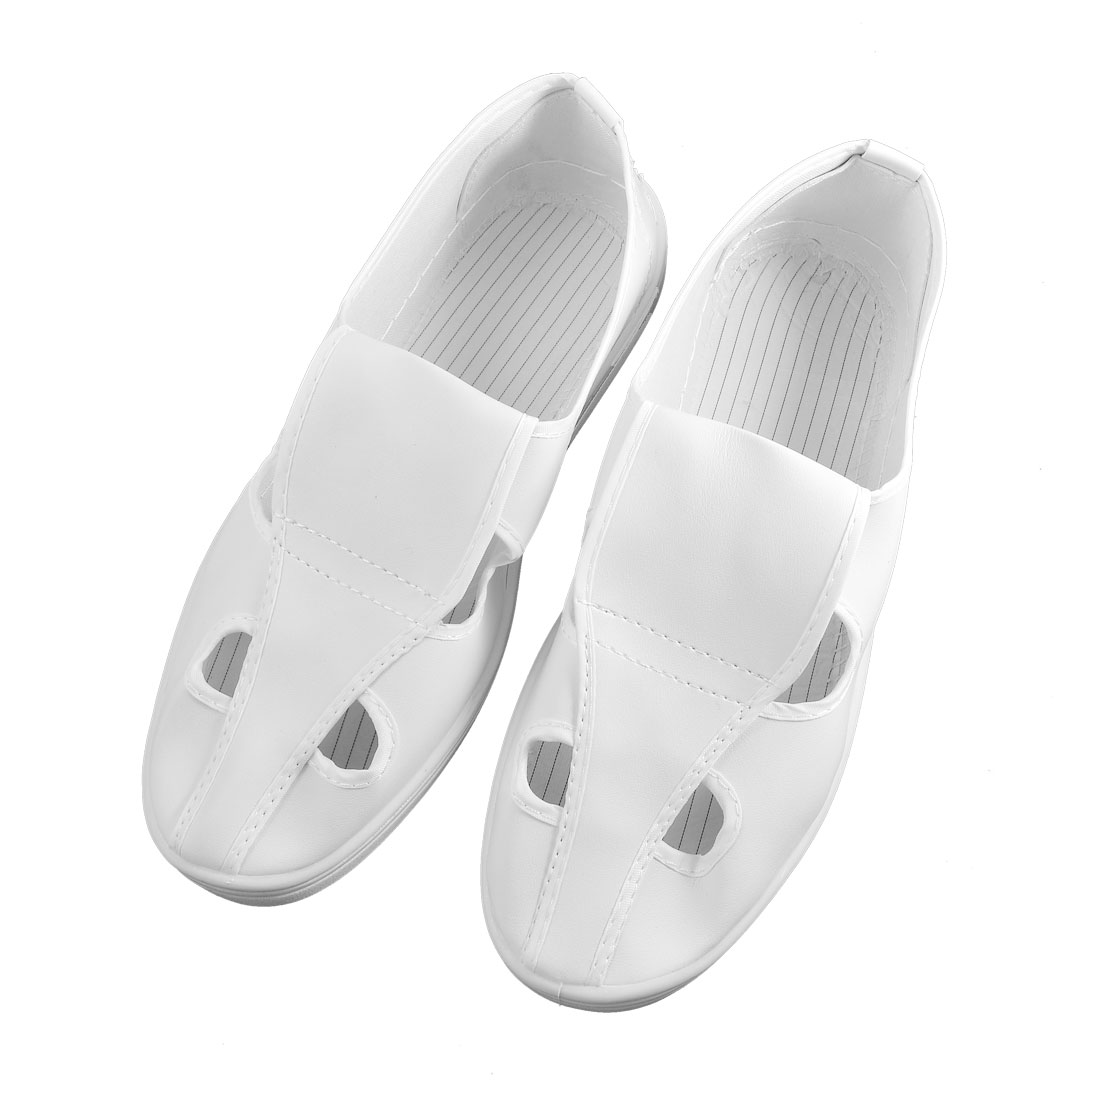 Men White PVC Nonslip Sole Anti-static Clean Room ESD Shoes US 9.5